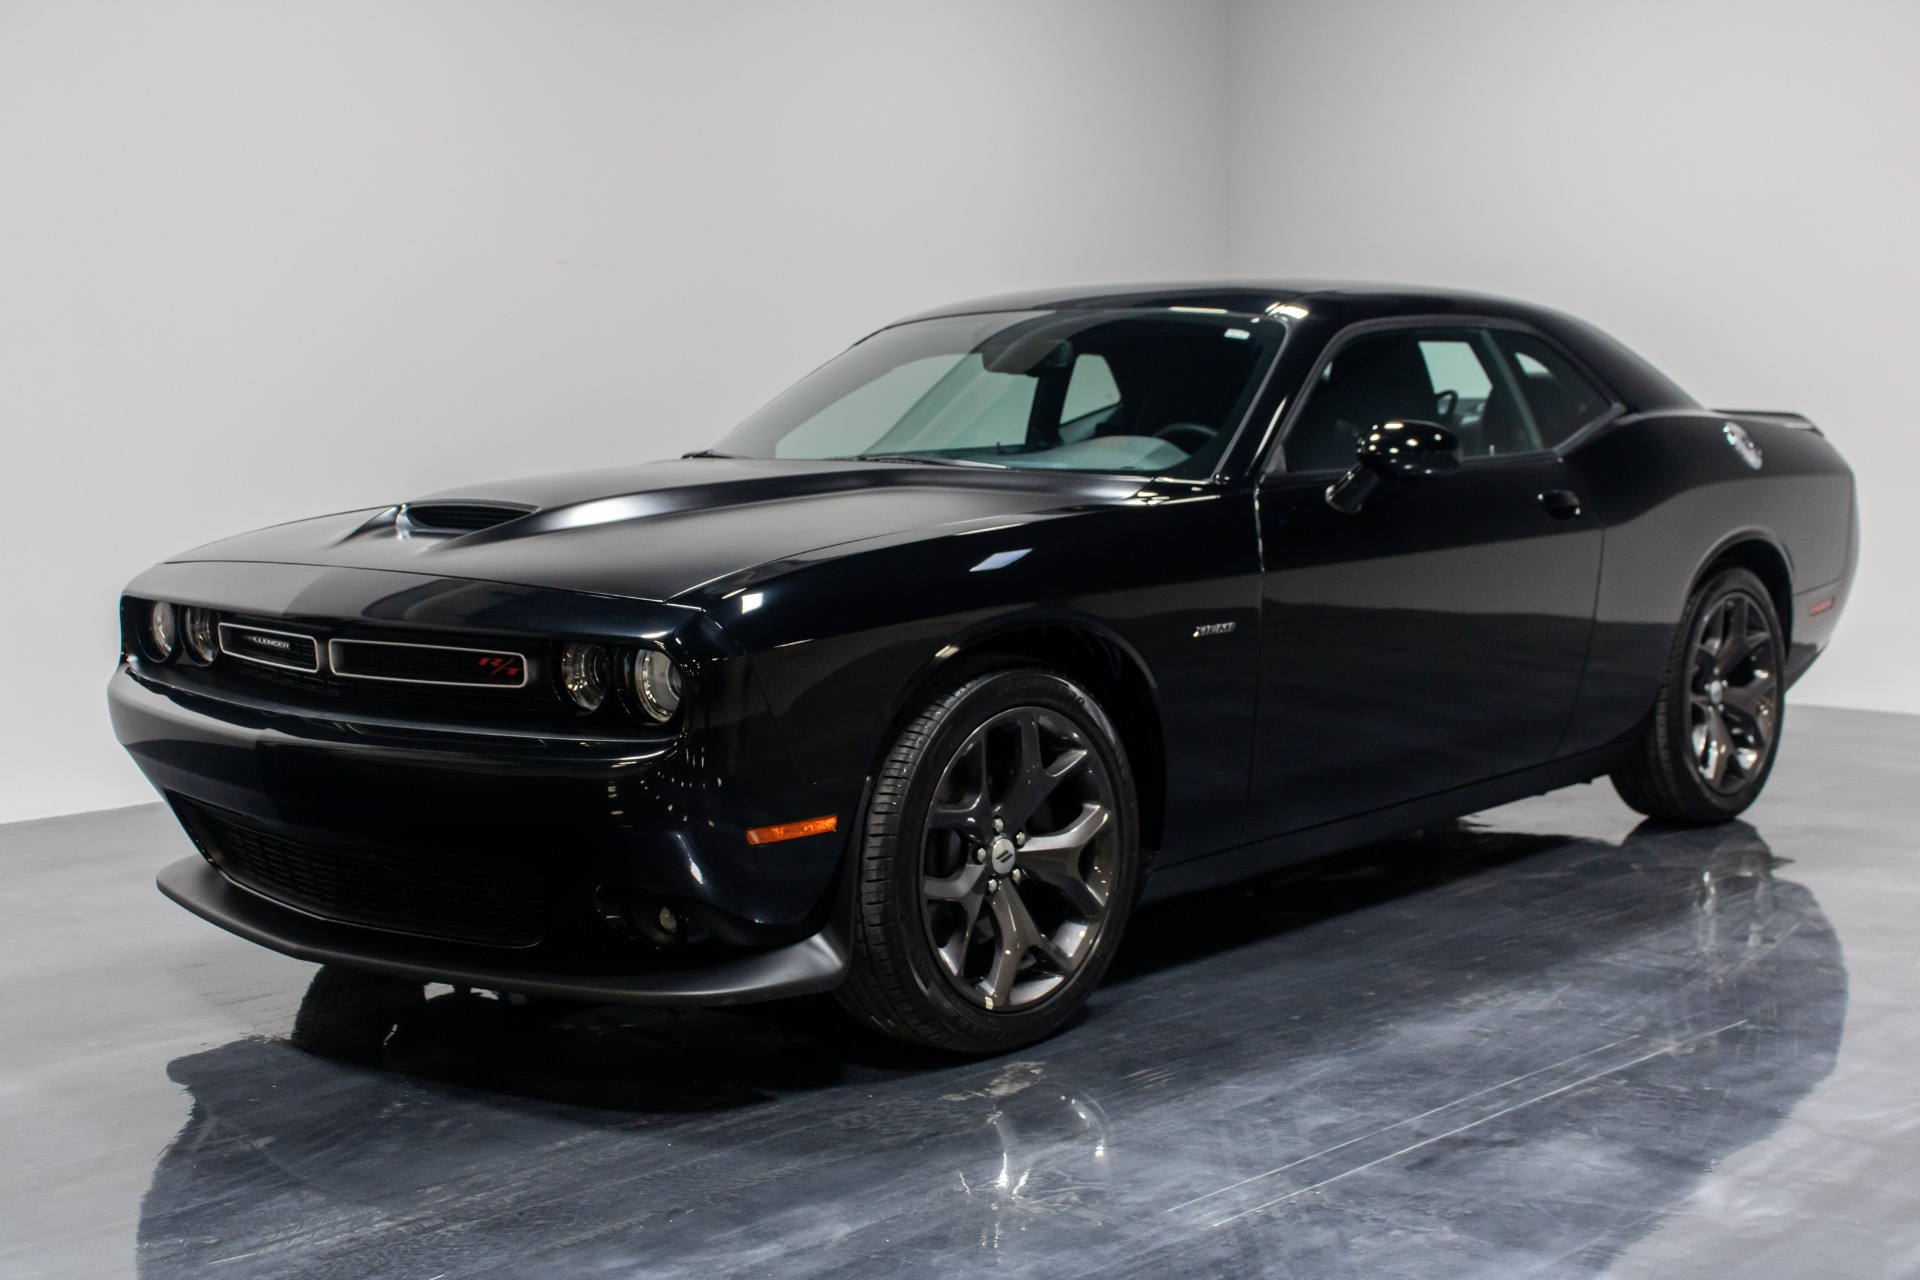 Used 2019 Dodge Challenger R/T Coupe 2D for sale Sold at Perfect Auto Collection in Akron OH 44310 1